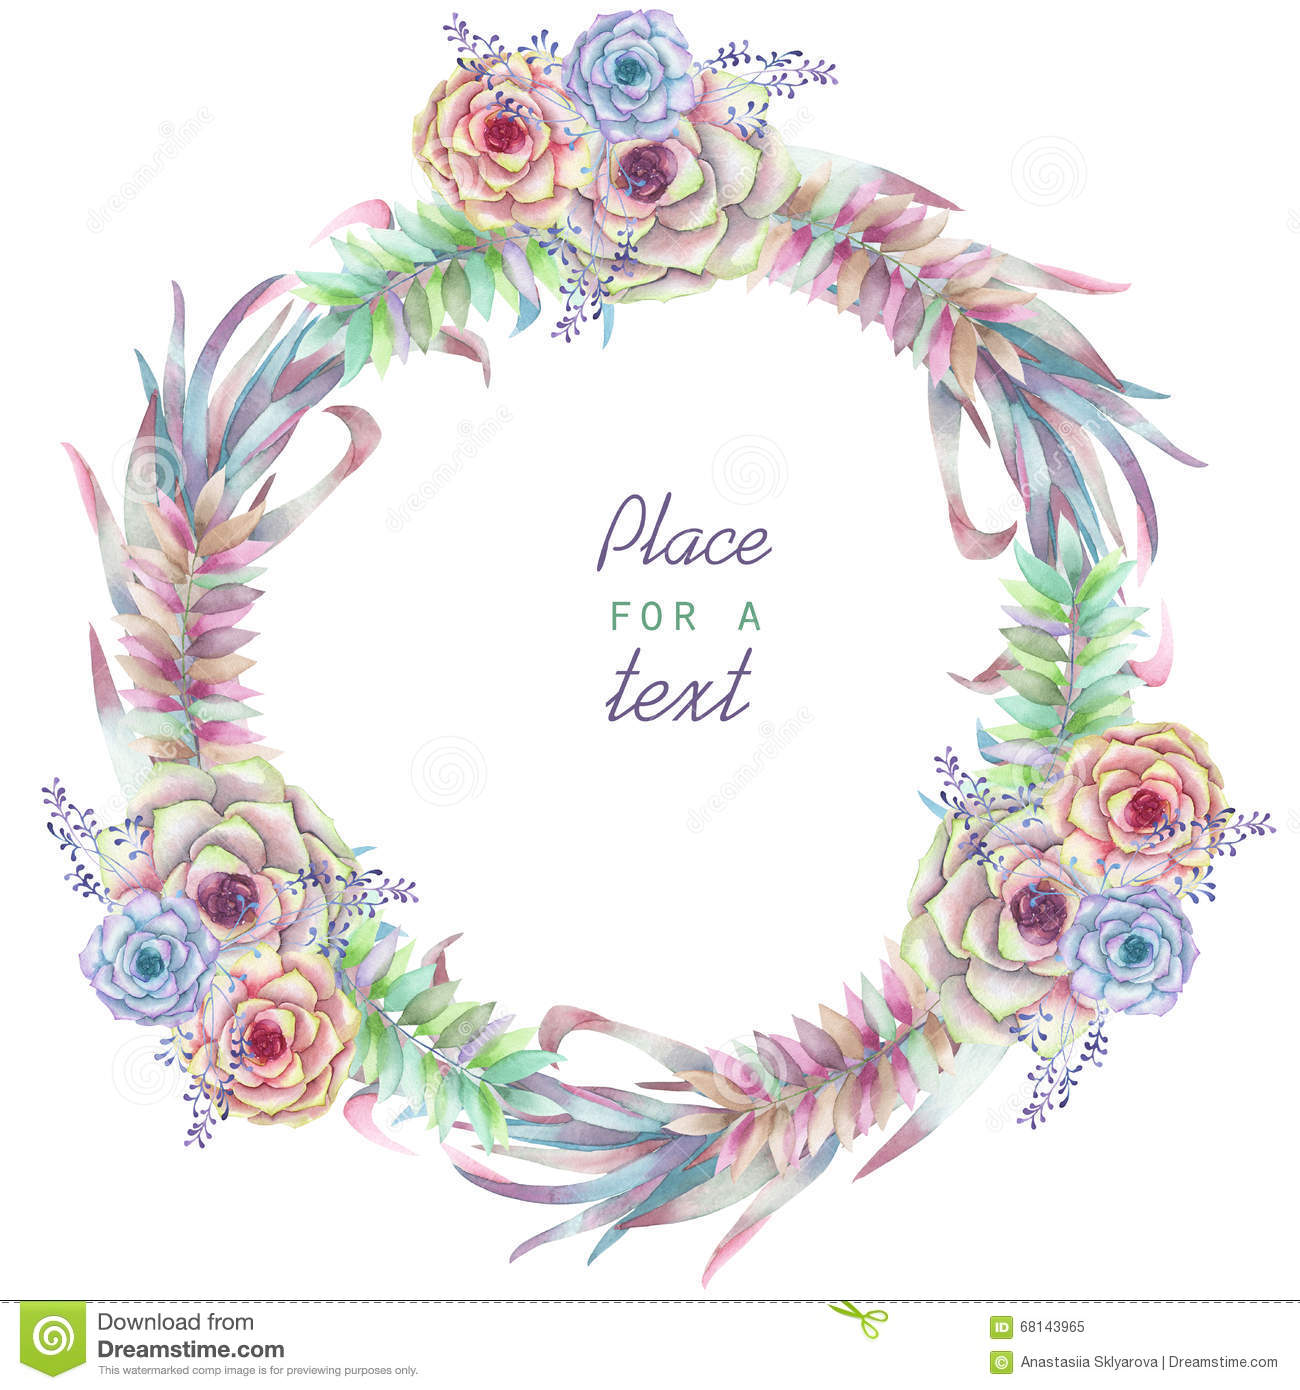 A Circle Frame, Wreath, Frame Border With The Watercolor Flowers And ...